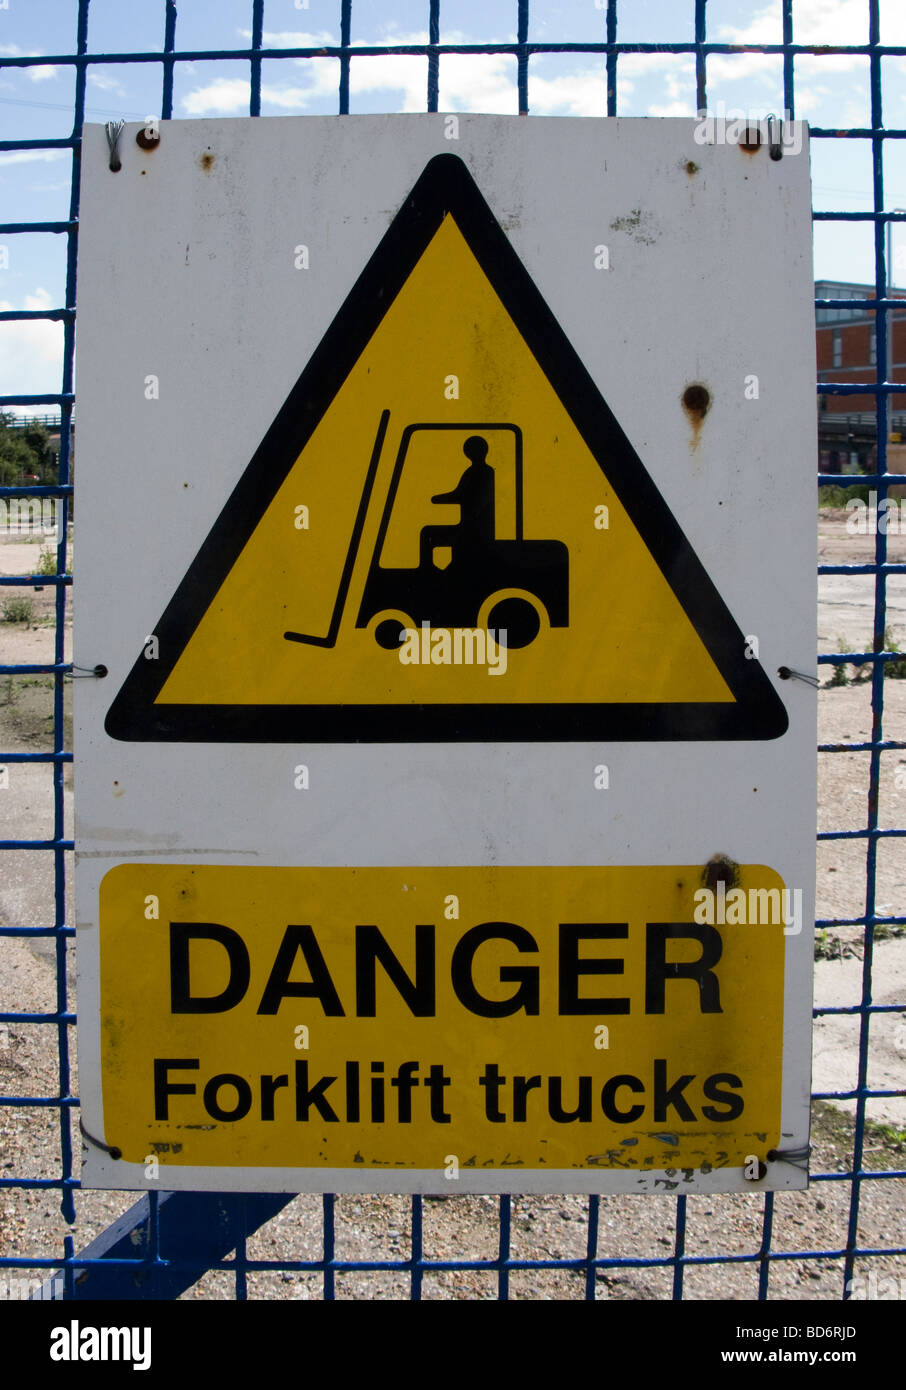 forklift truck sign Stock Photo